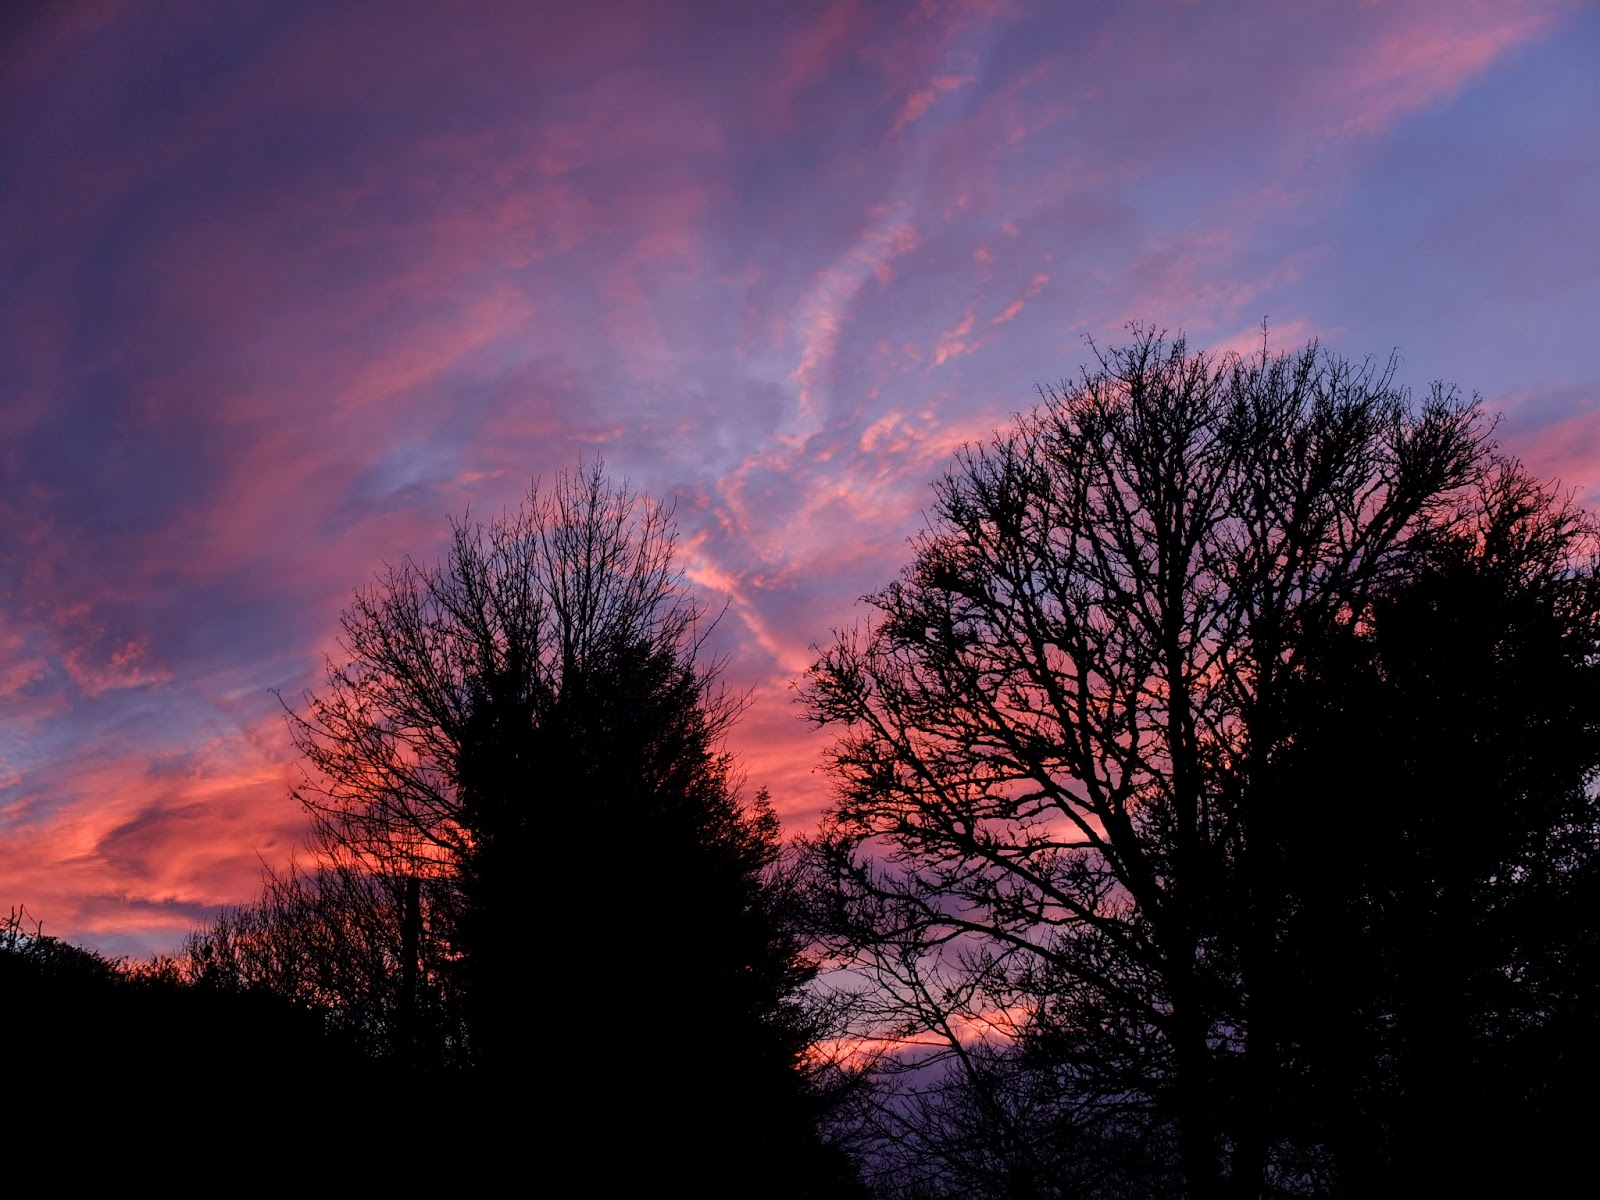 Purple and pink sunset over trees in the Boggeragh Mountains, Co.Cork